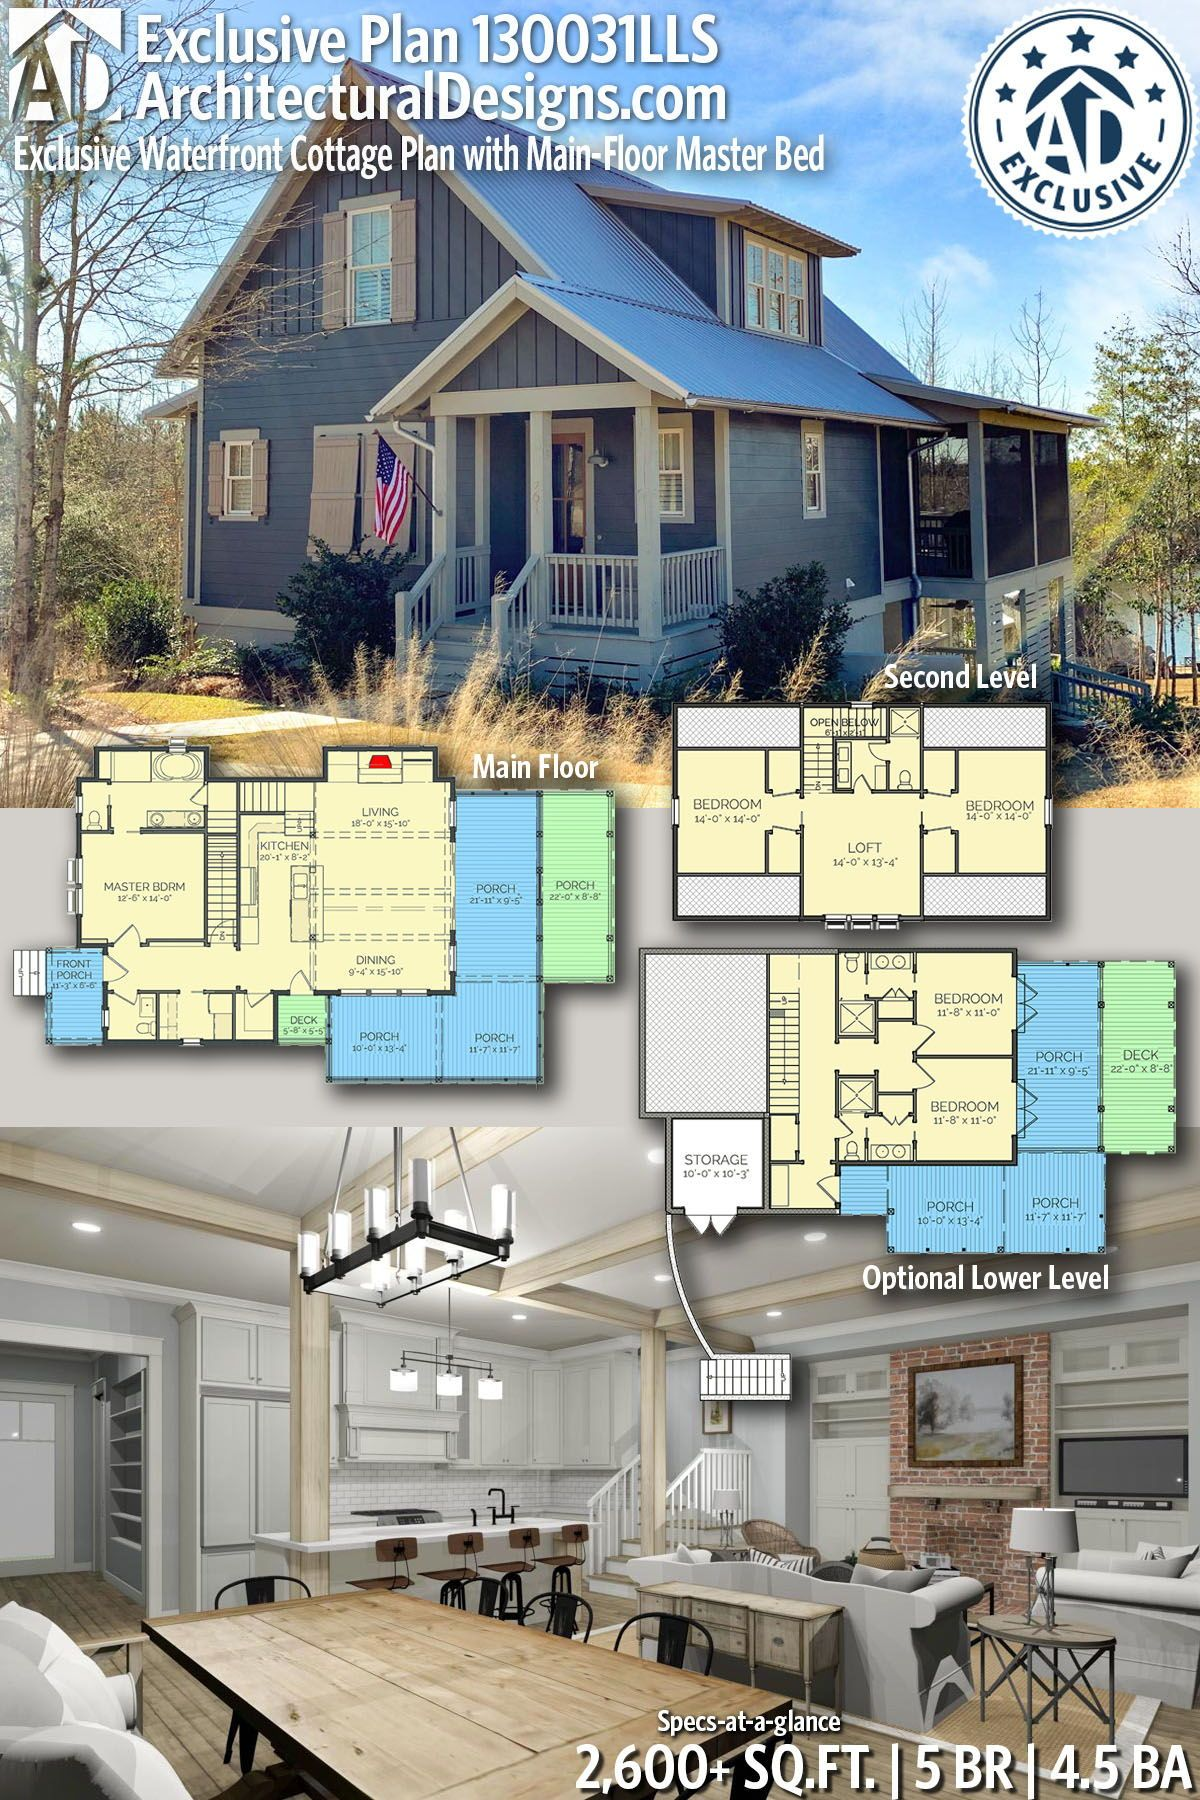 Plan 130031lls Exclusive Waterfront Cottage Plan With Main Floor Master Bed Cottage Plan Lake House Plans Cottage Floor Plans